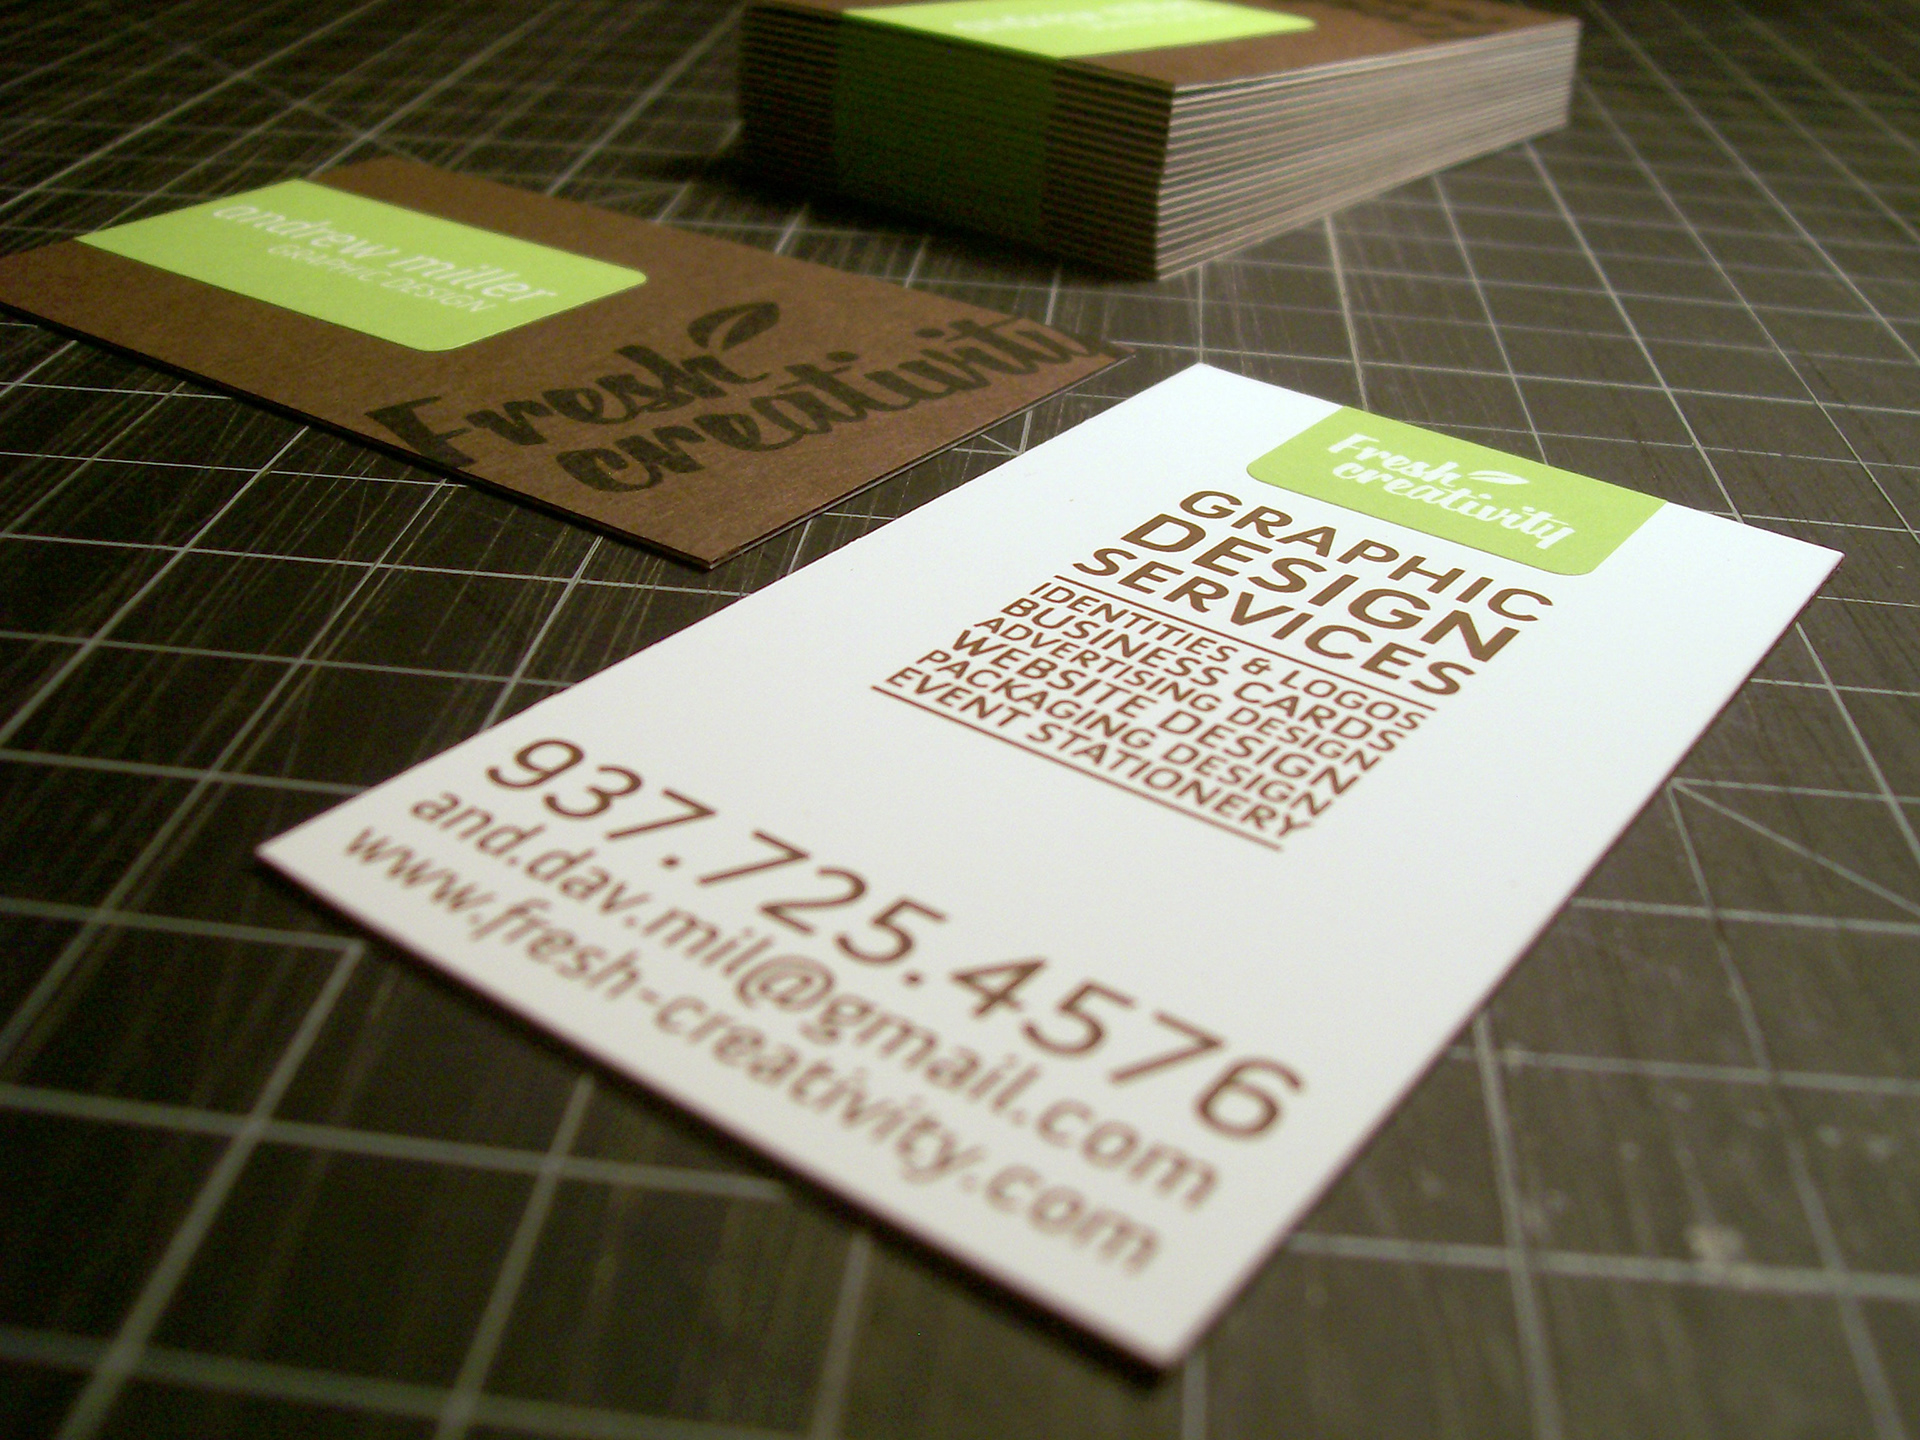 Andrew Miller Graphic Designer - Self promotional business cards